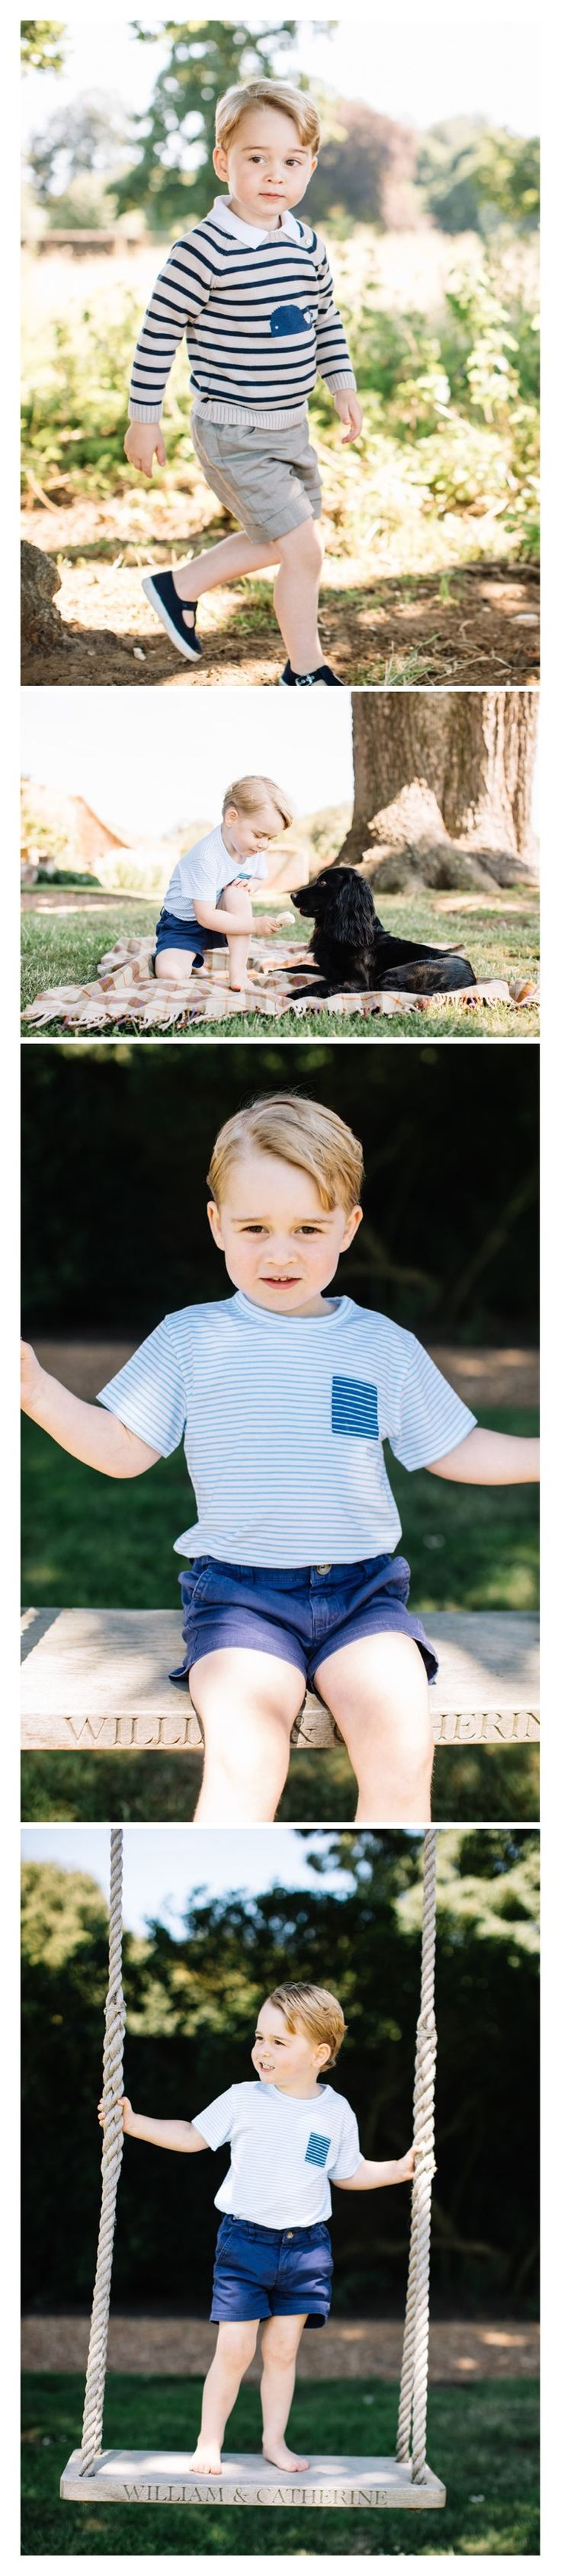 New Photos released by Kensington Palace to celebrate Prince George's 3rd Birthday